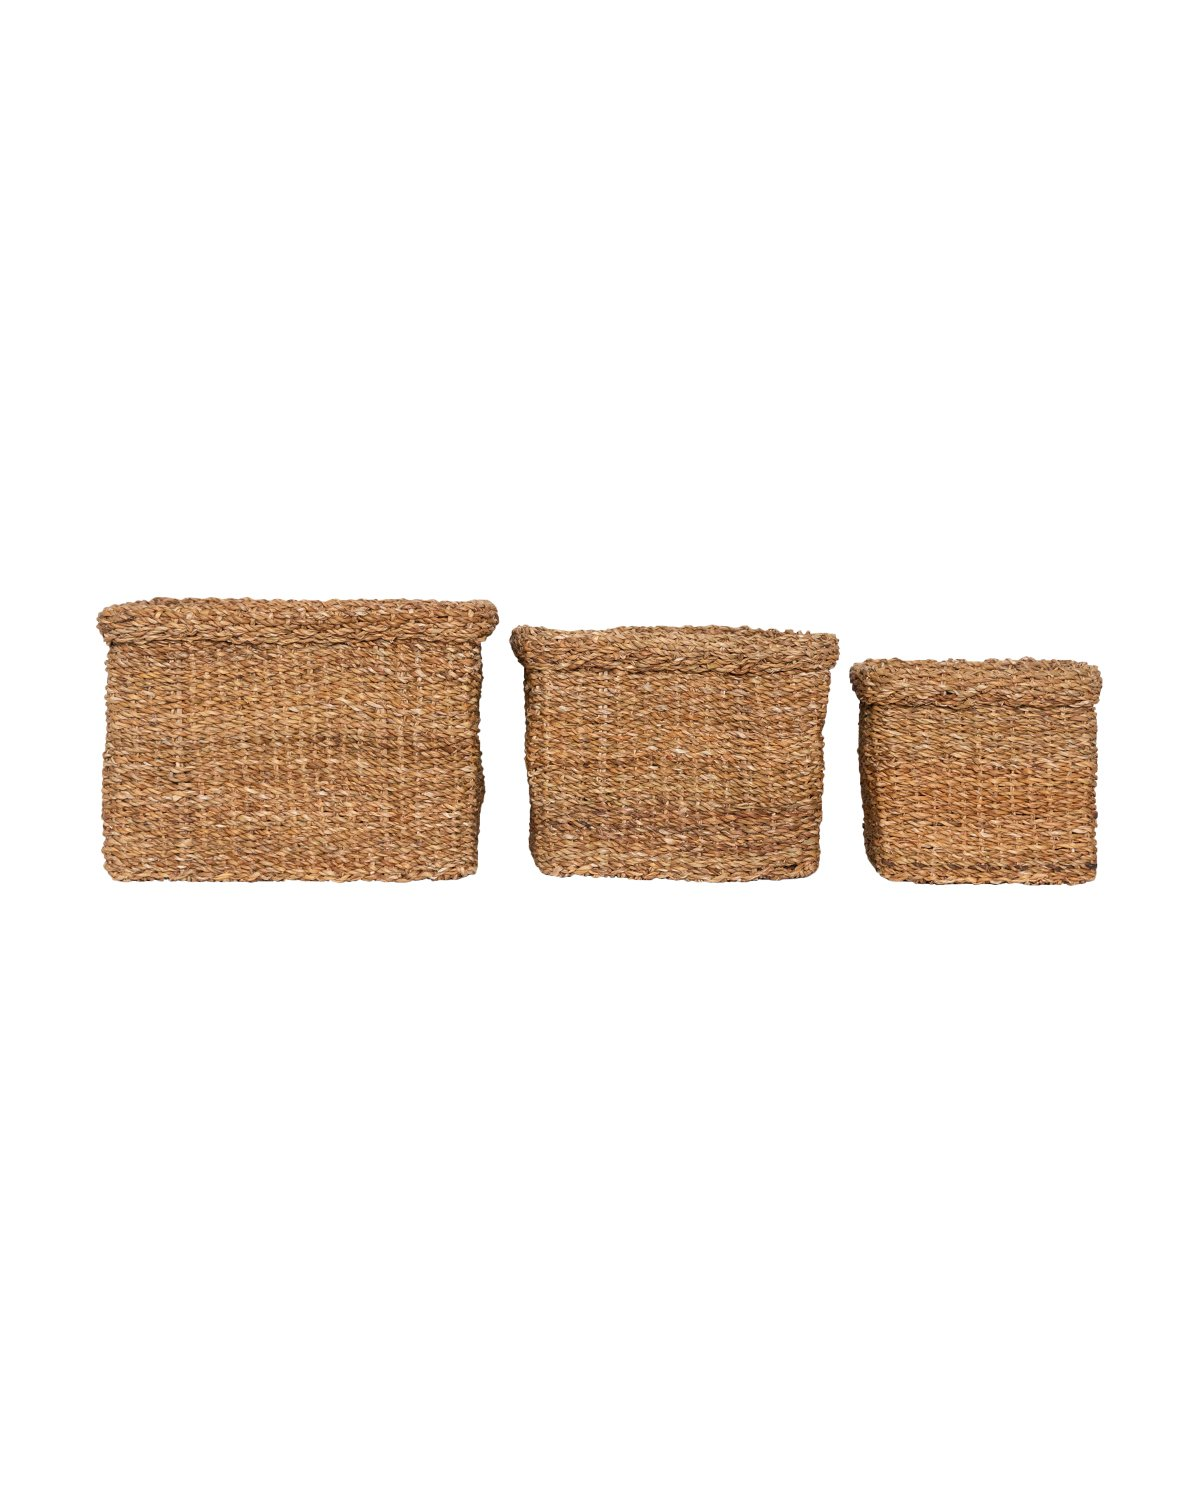 square_cuffed_seagrass_baskets4.jpg